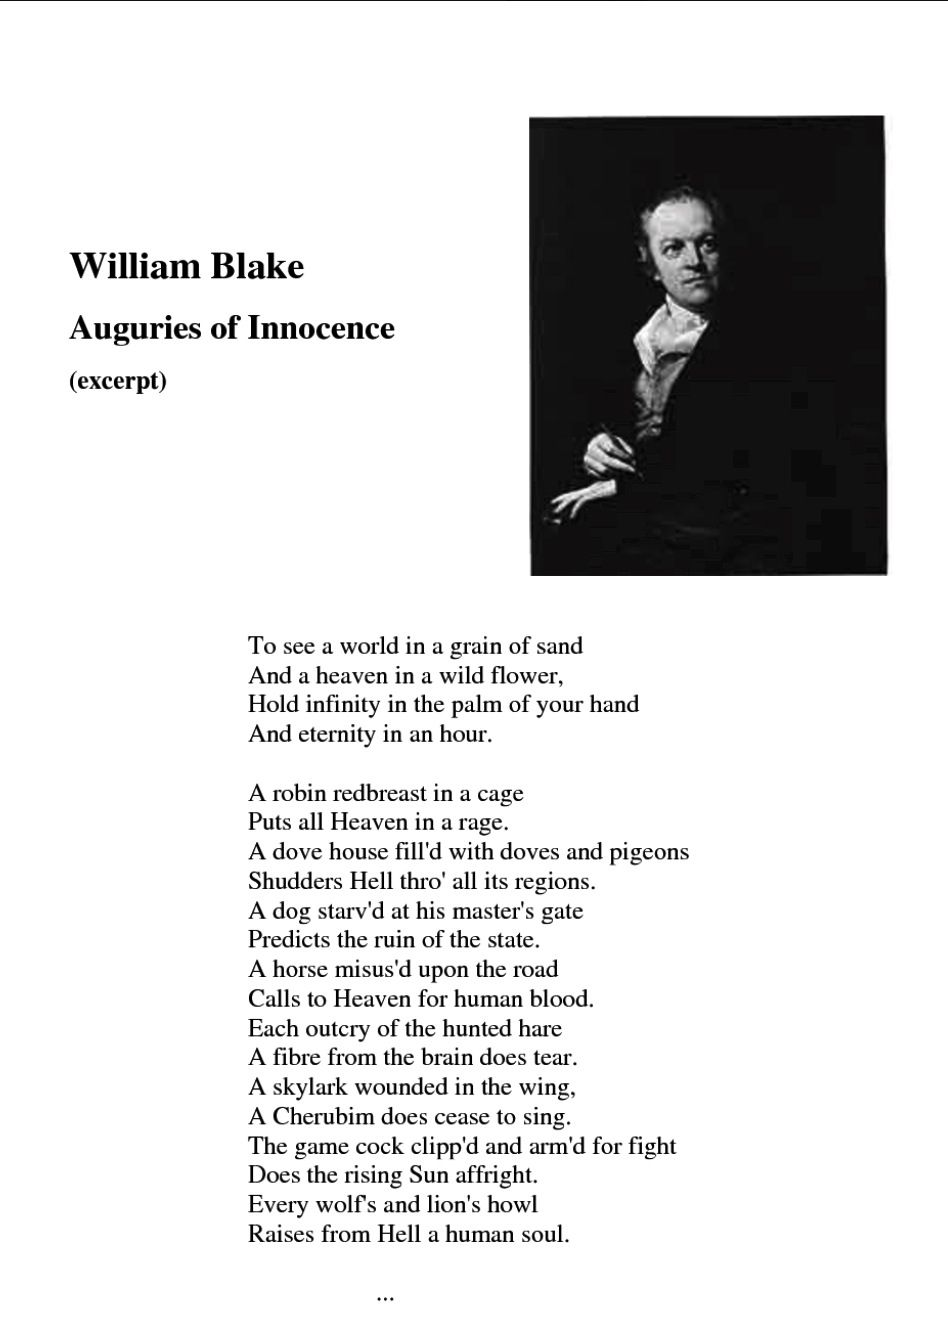 an analysis of william blakes garden of love Analysis garden of love by william blake - janine dehn - term paper - english language and literature studies - literature - publish your bachelor's or master's thesis, dissertation, term paper or essay.